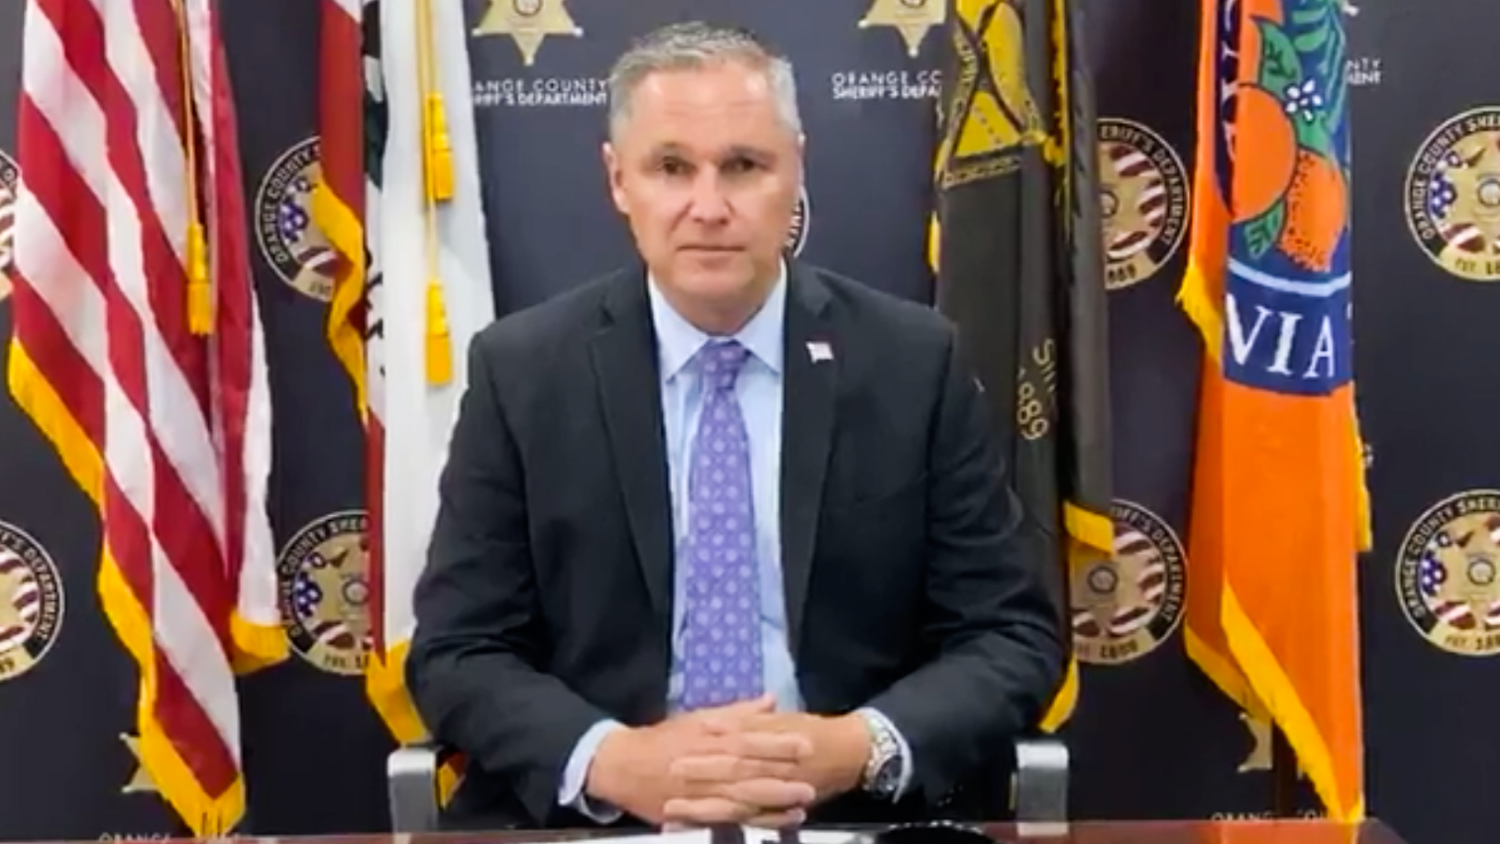 Sheriff Barnes Has Stopped Taking Questions at His News Briefings. Here Are the Questions He Wouldn't Answer.